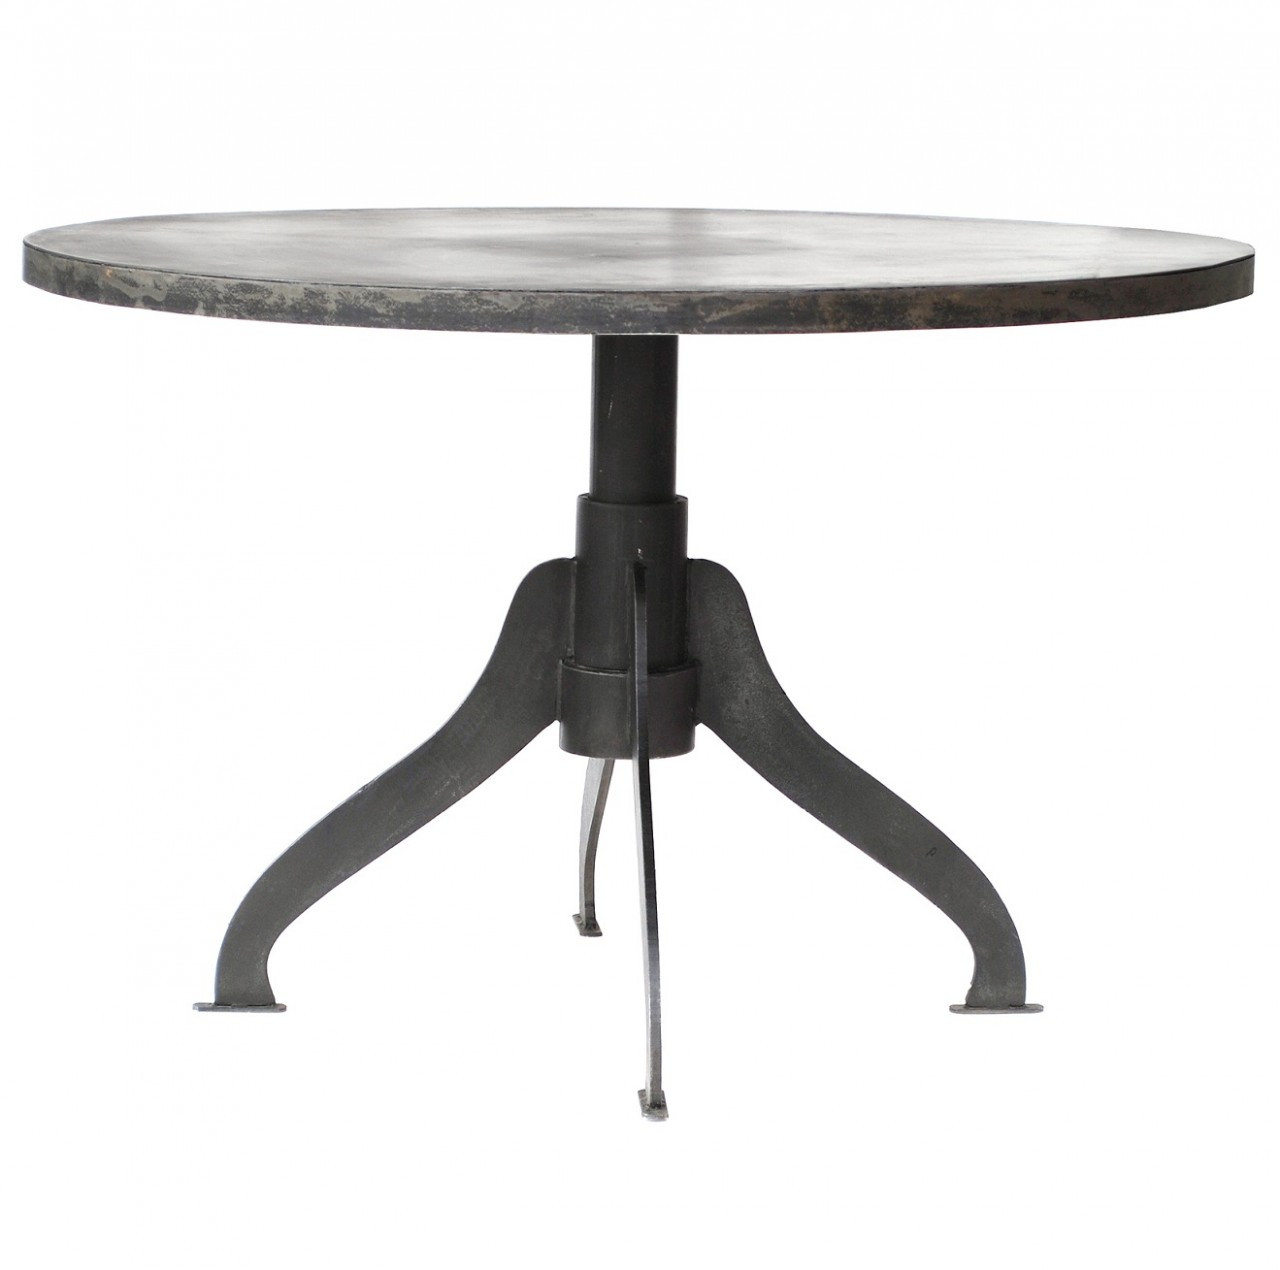 48 Inch Round Dining Table Room Contemporary With